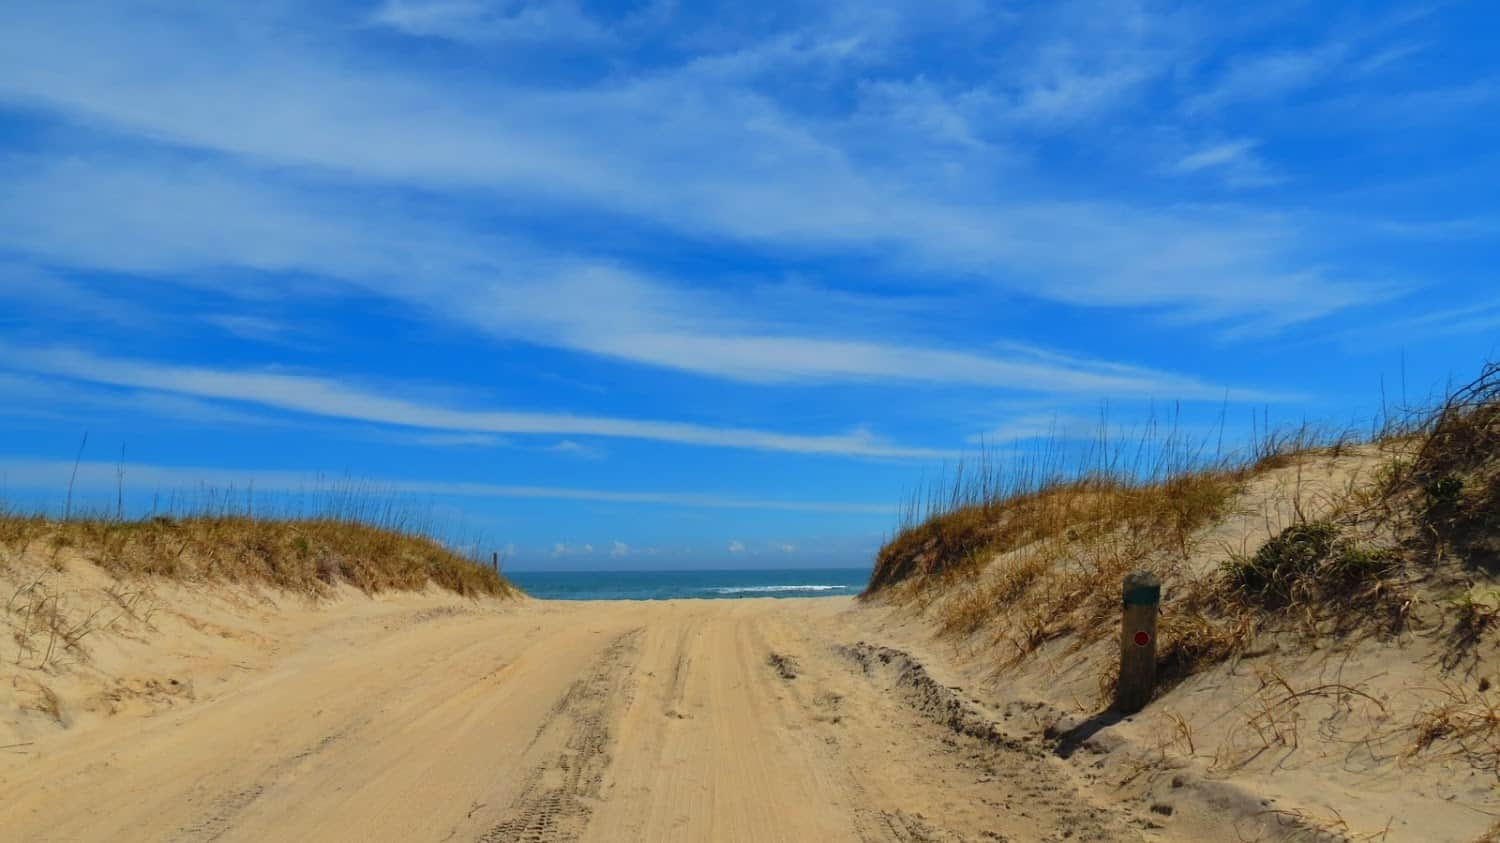 Cape Hatteras National Seashore. Rachael McGrath photos.